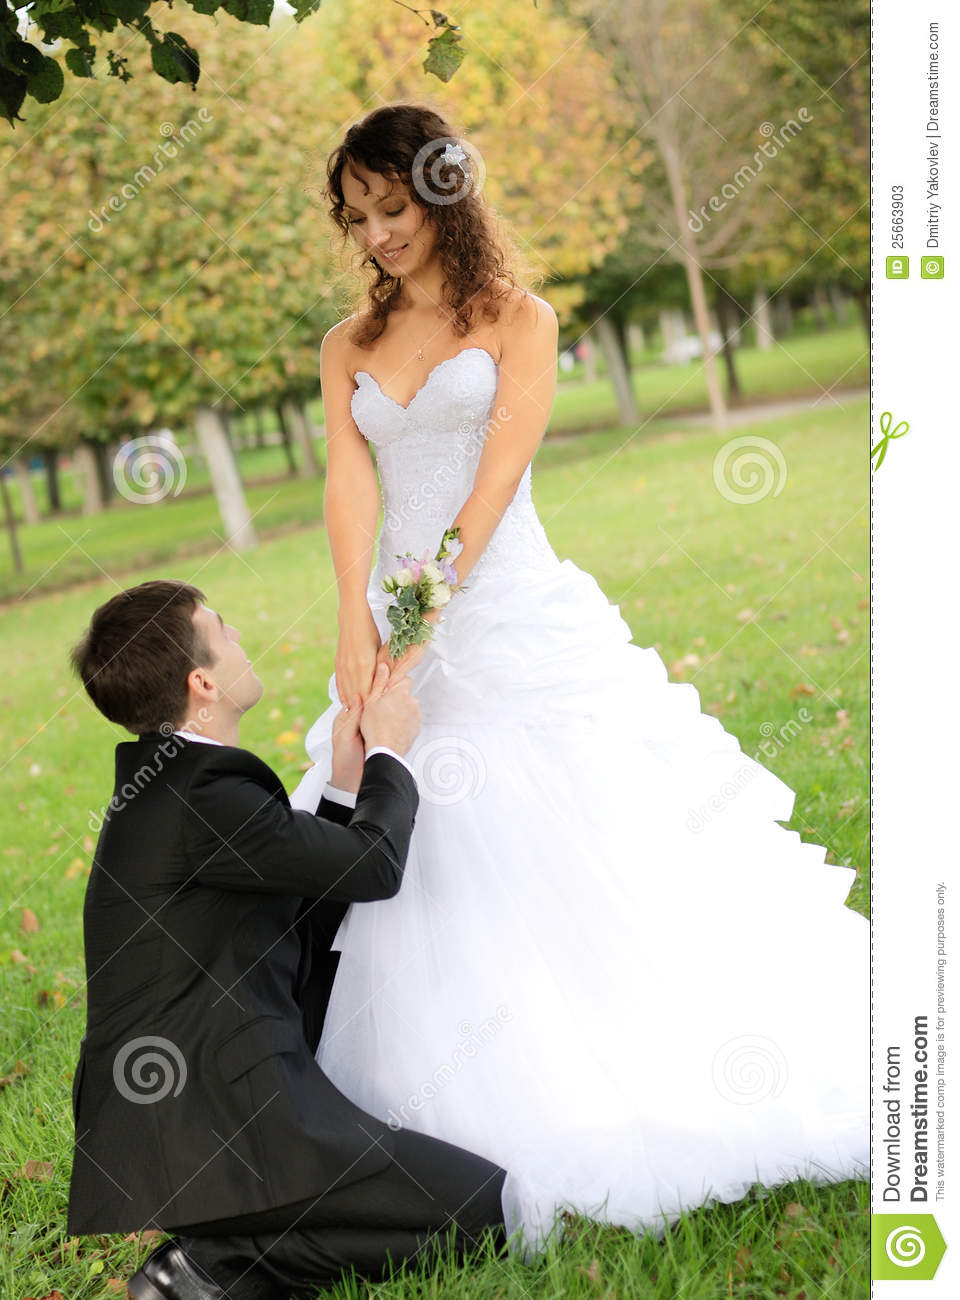 Young Bride With Bridegroom Stock Photos Image 25663903